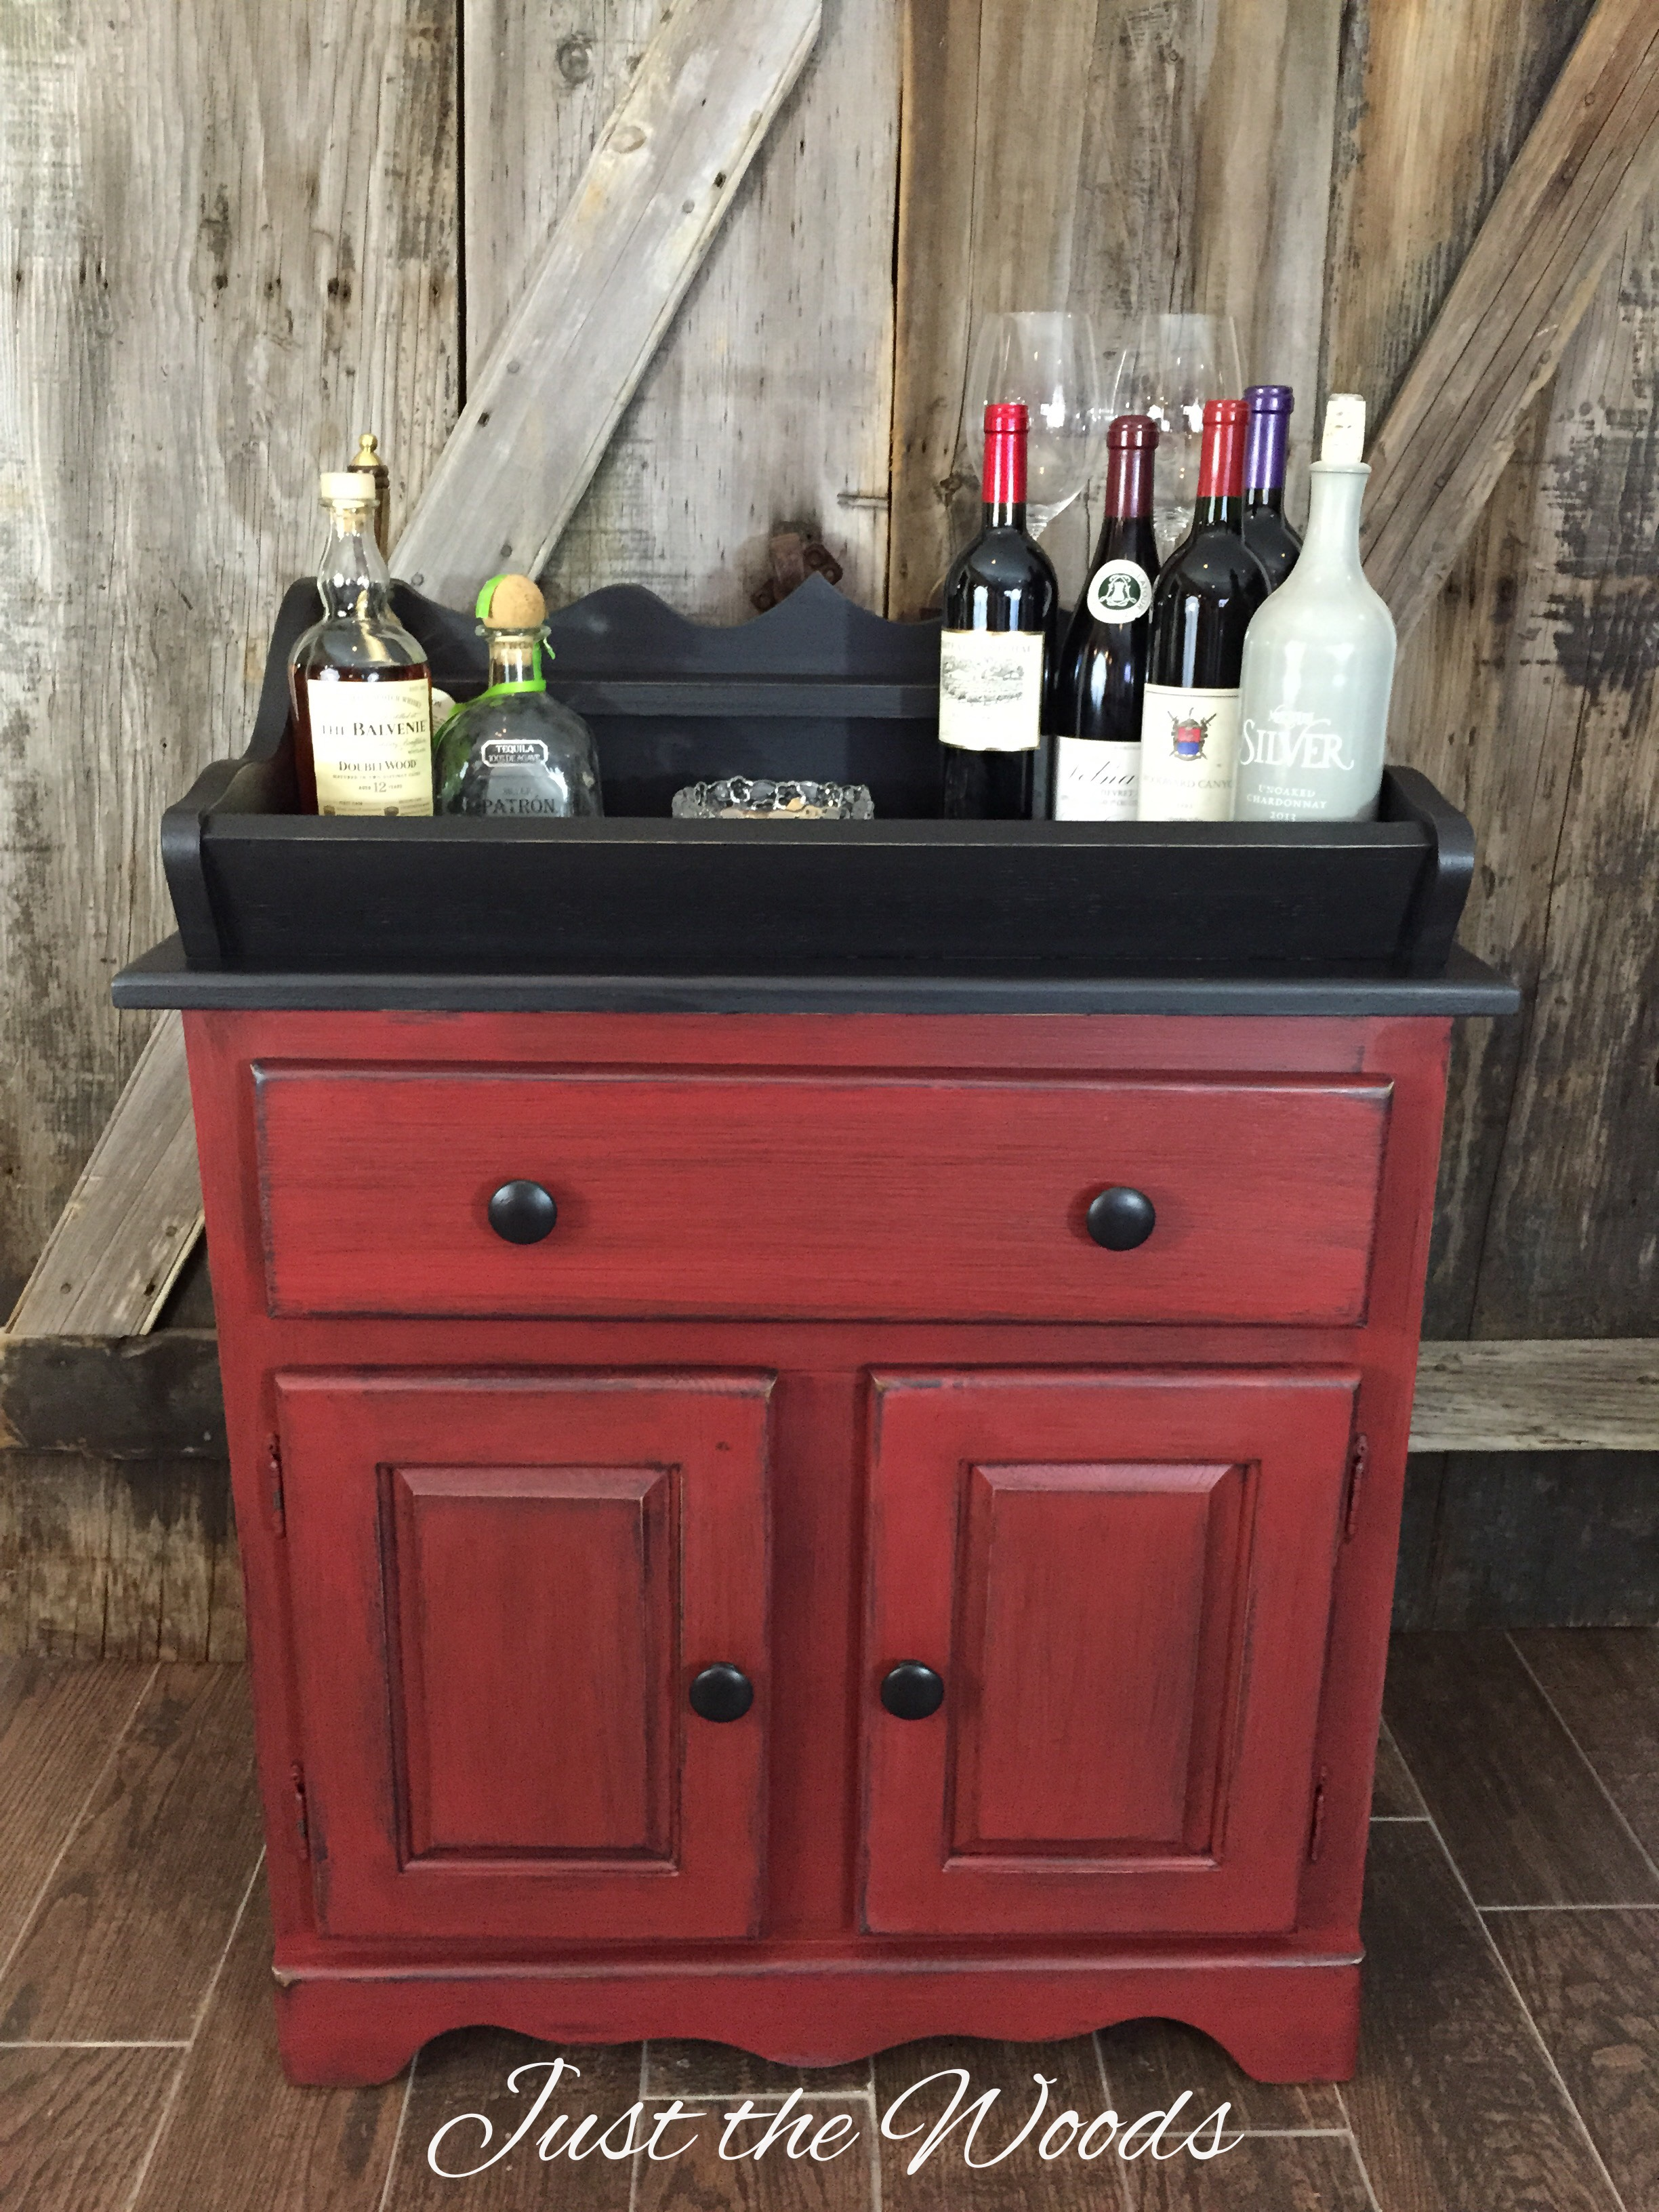 rustic dry sink made home bar $225